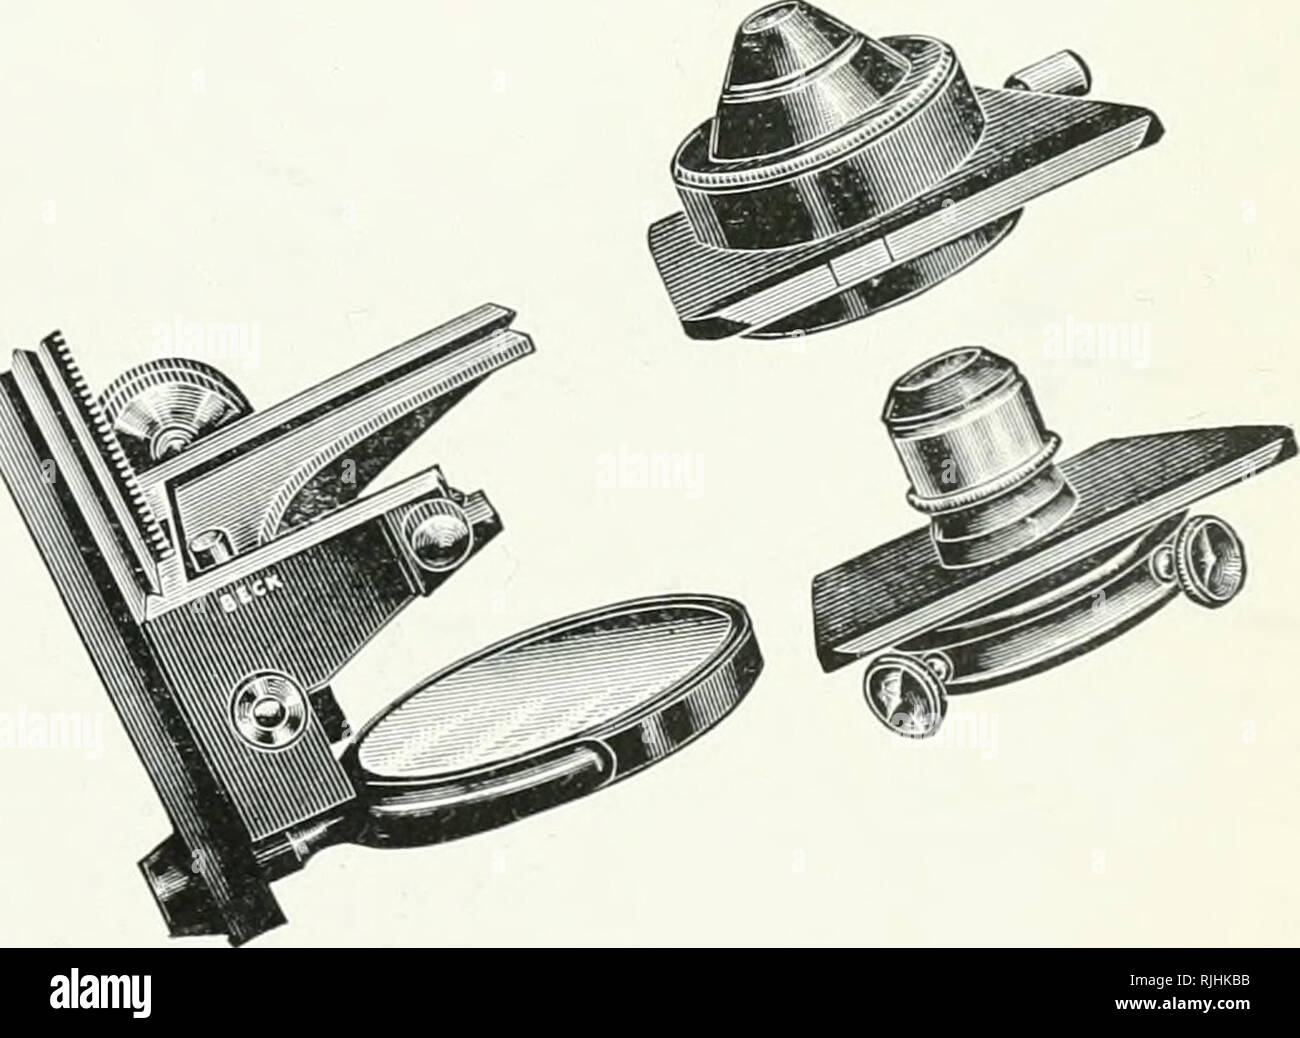 . Beck microscopes. Microscopes. No. 3515.. 41. Please note that these images are extracted from scanned page images that may have been digitally enhanced for readability - coloration and appearance of these illustrations may not perfectly resemble the original work.. Beck (R. & J. ) Ltd. London : Beck - Stock Image